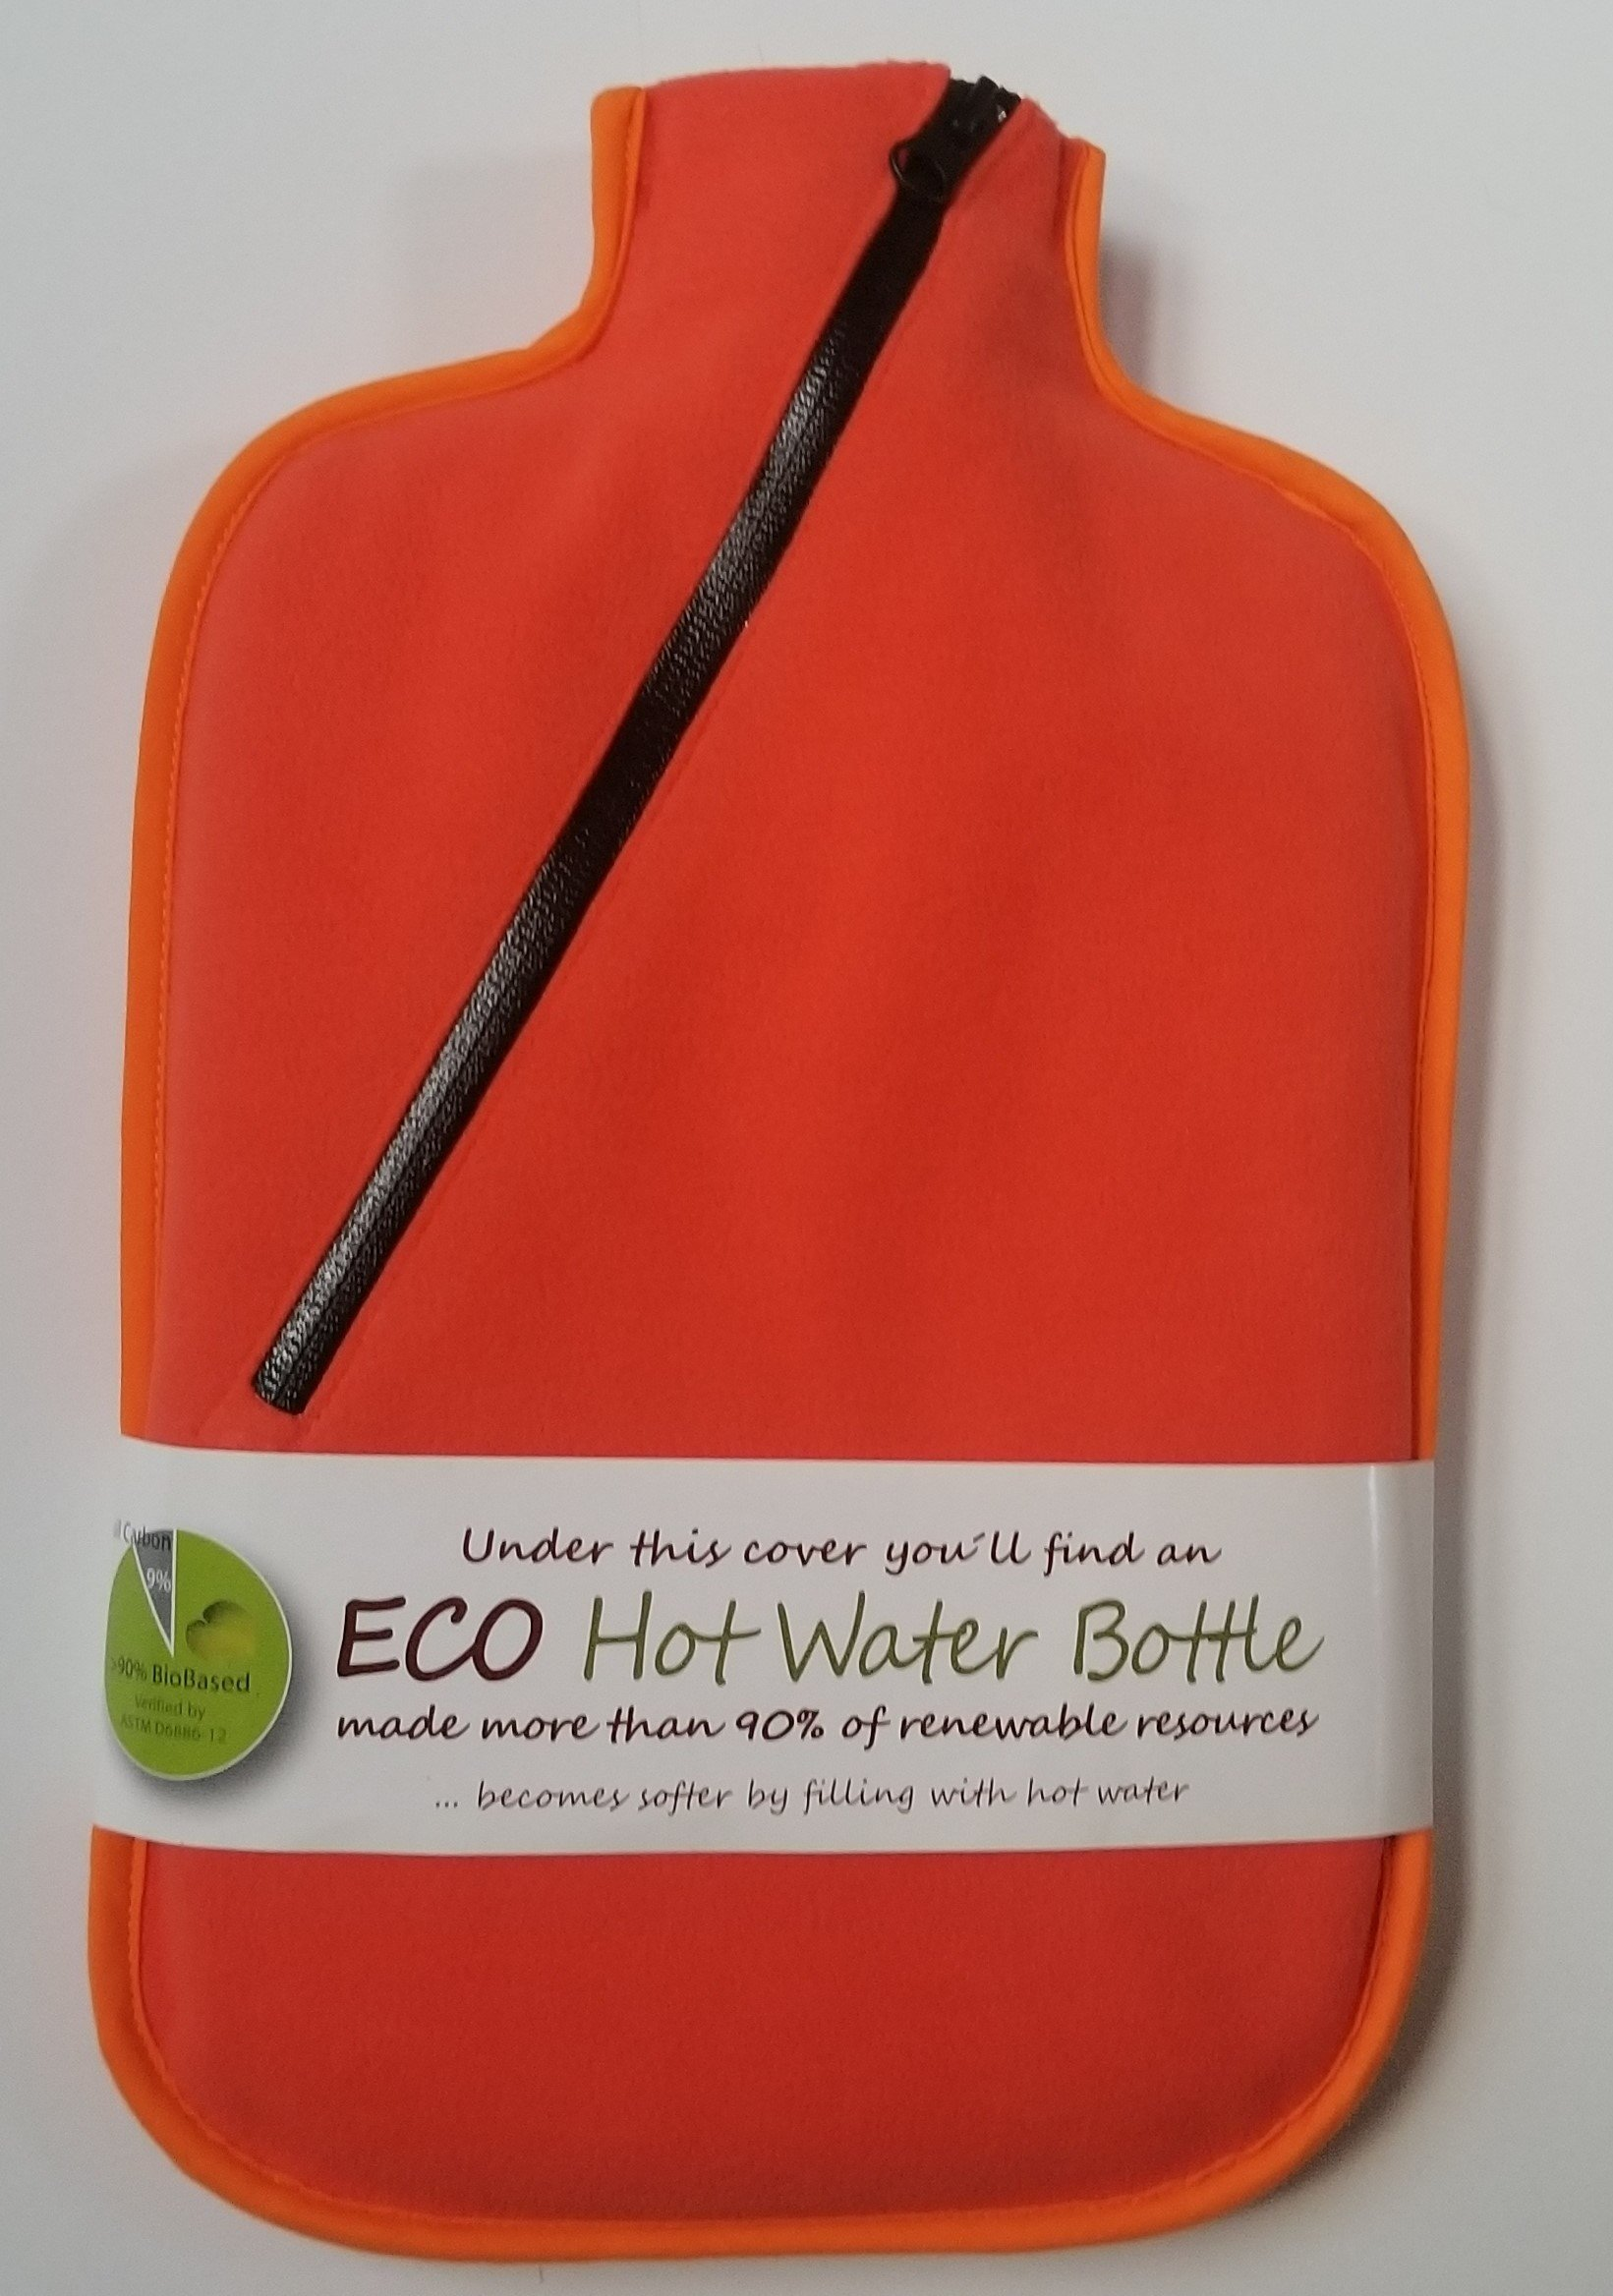 Hugo Frosch 2L Eco Hot Water Bottle with Cover, Highest Quality, Bed Warmer, Stay Warm Camping - Made in Germany (orange) by Hugo Frosch